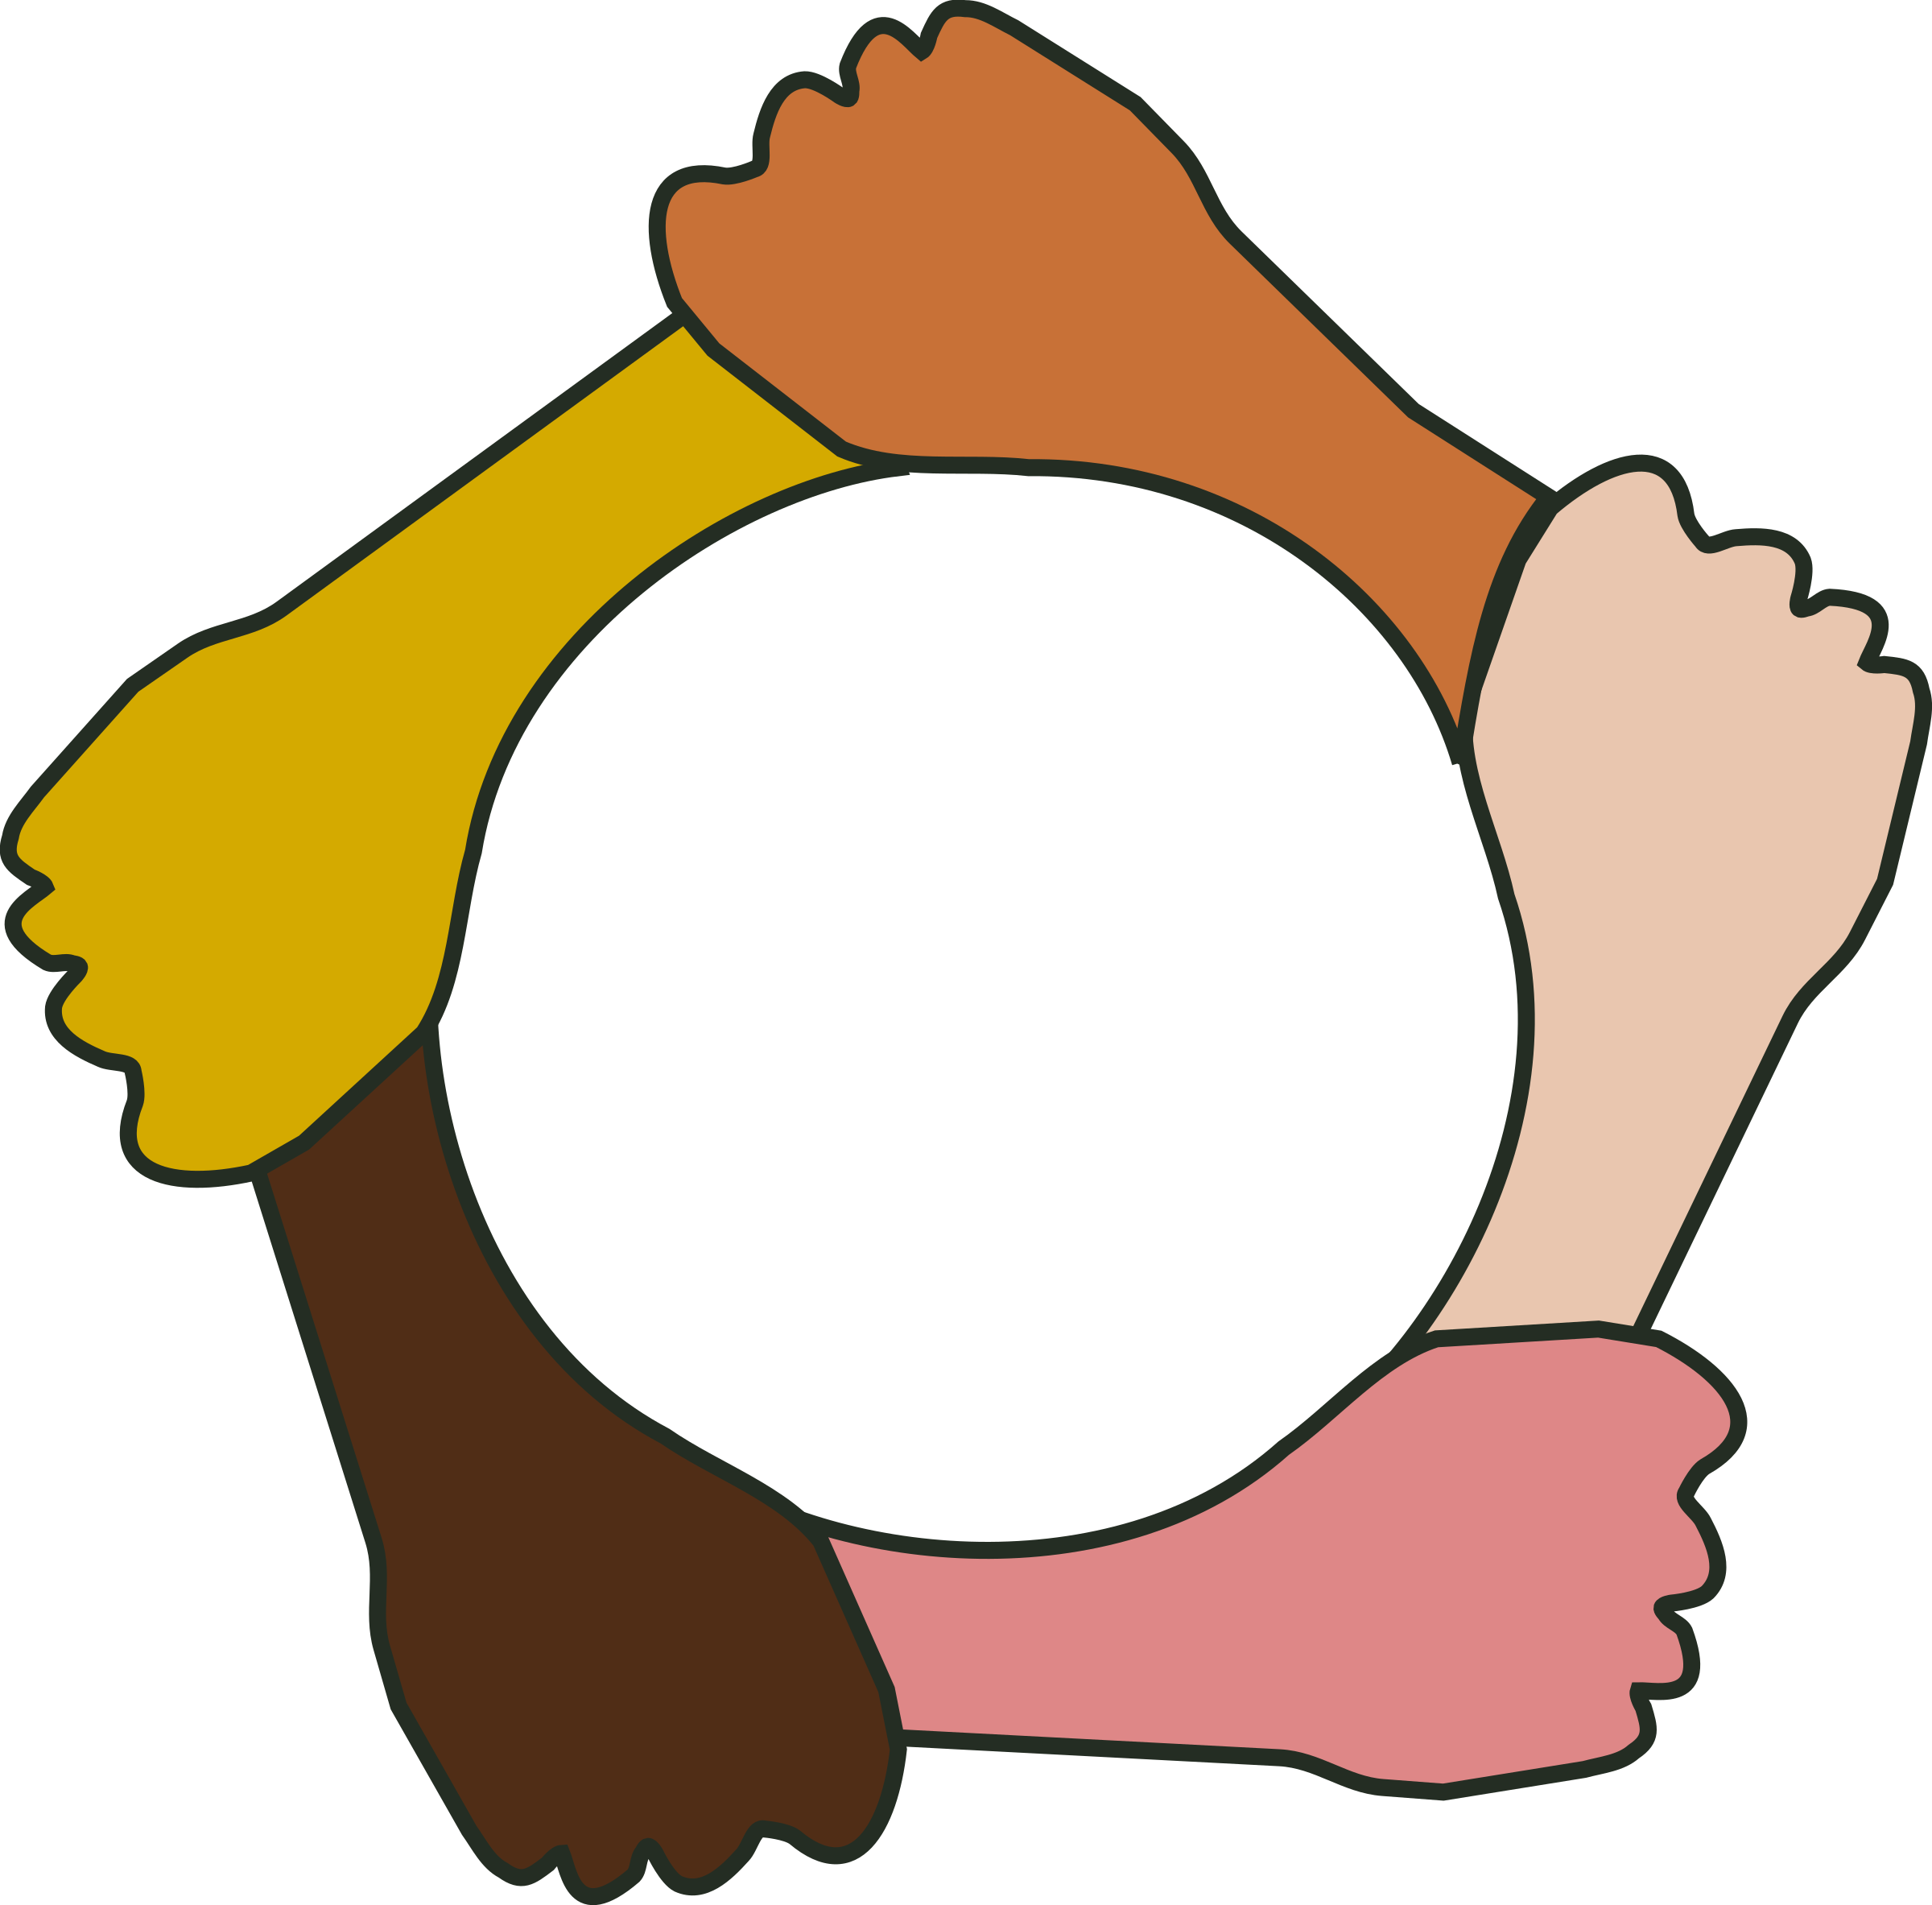 image free stock Circle clipart hand. Of hands big image.